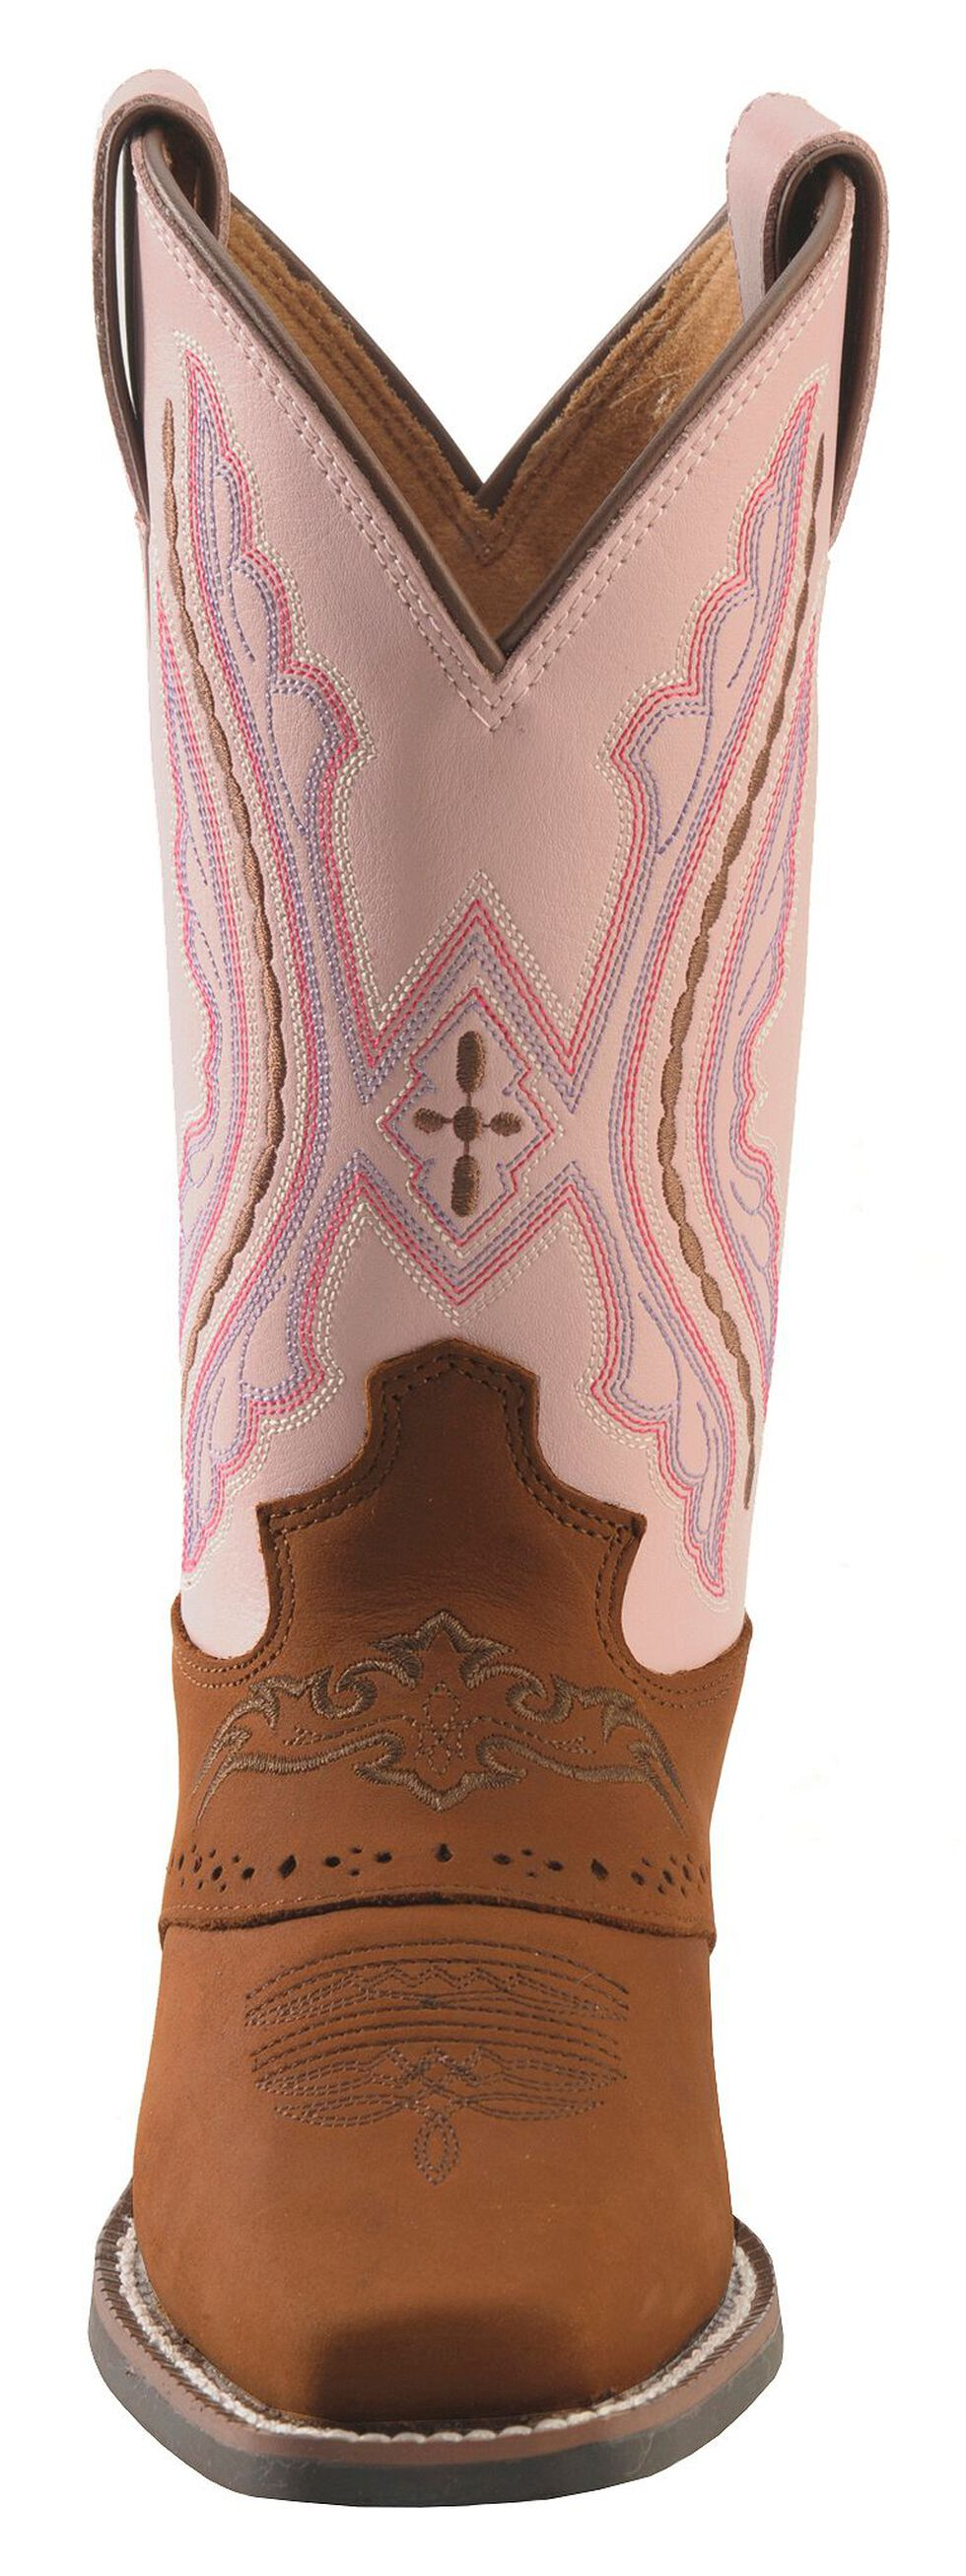 Justin Youth Girls' Western Saddle Vamp Cowgirl Boots - Square Toe, Brown, hi-res